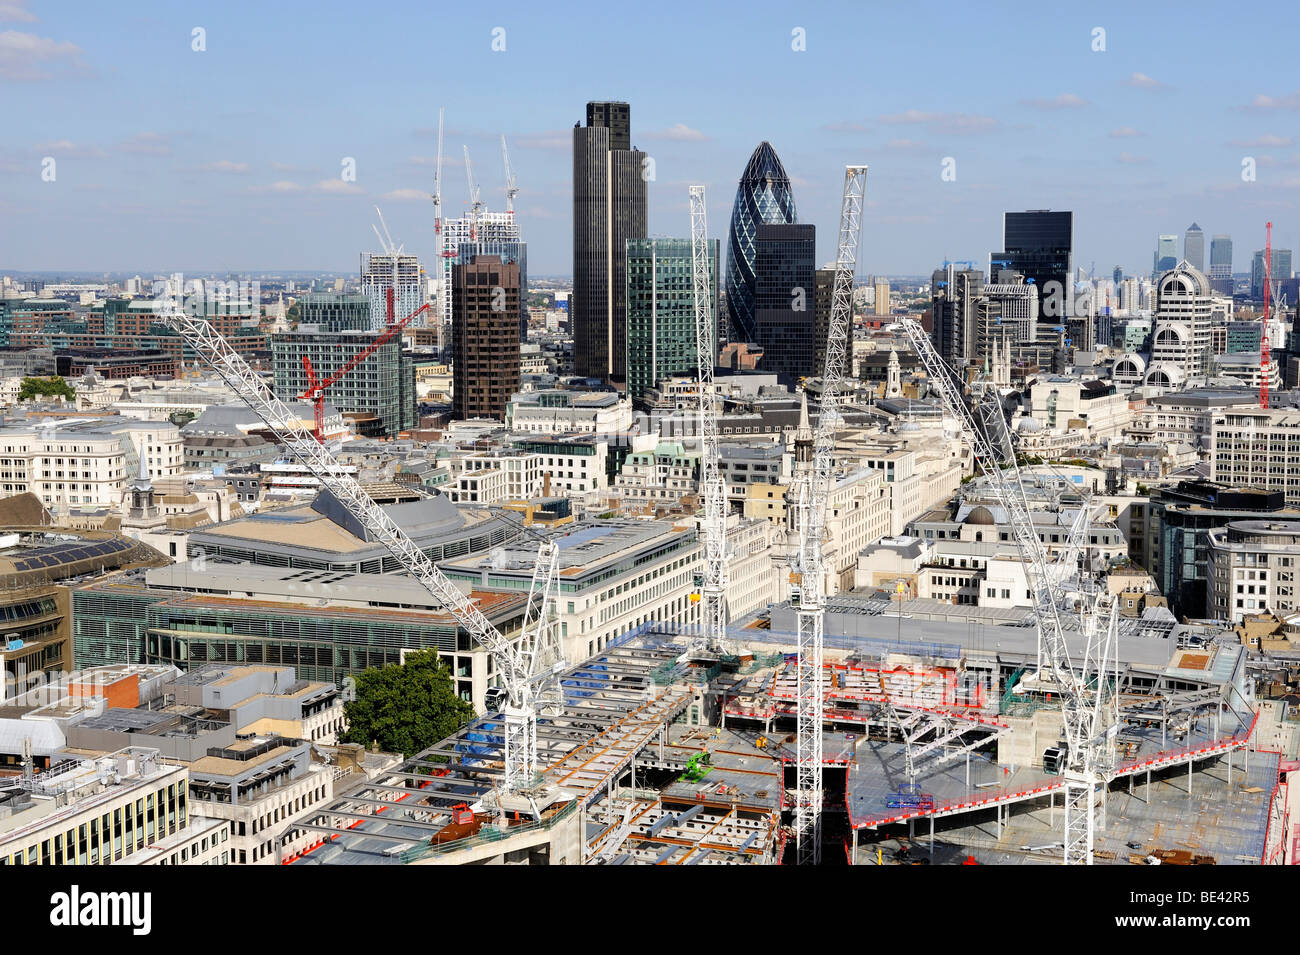 View over the city of London with an office building construction site, England, United Kingdom, Europe - Stock Image